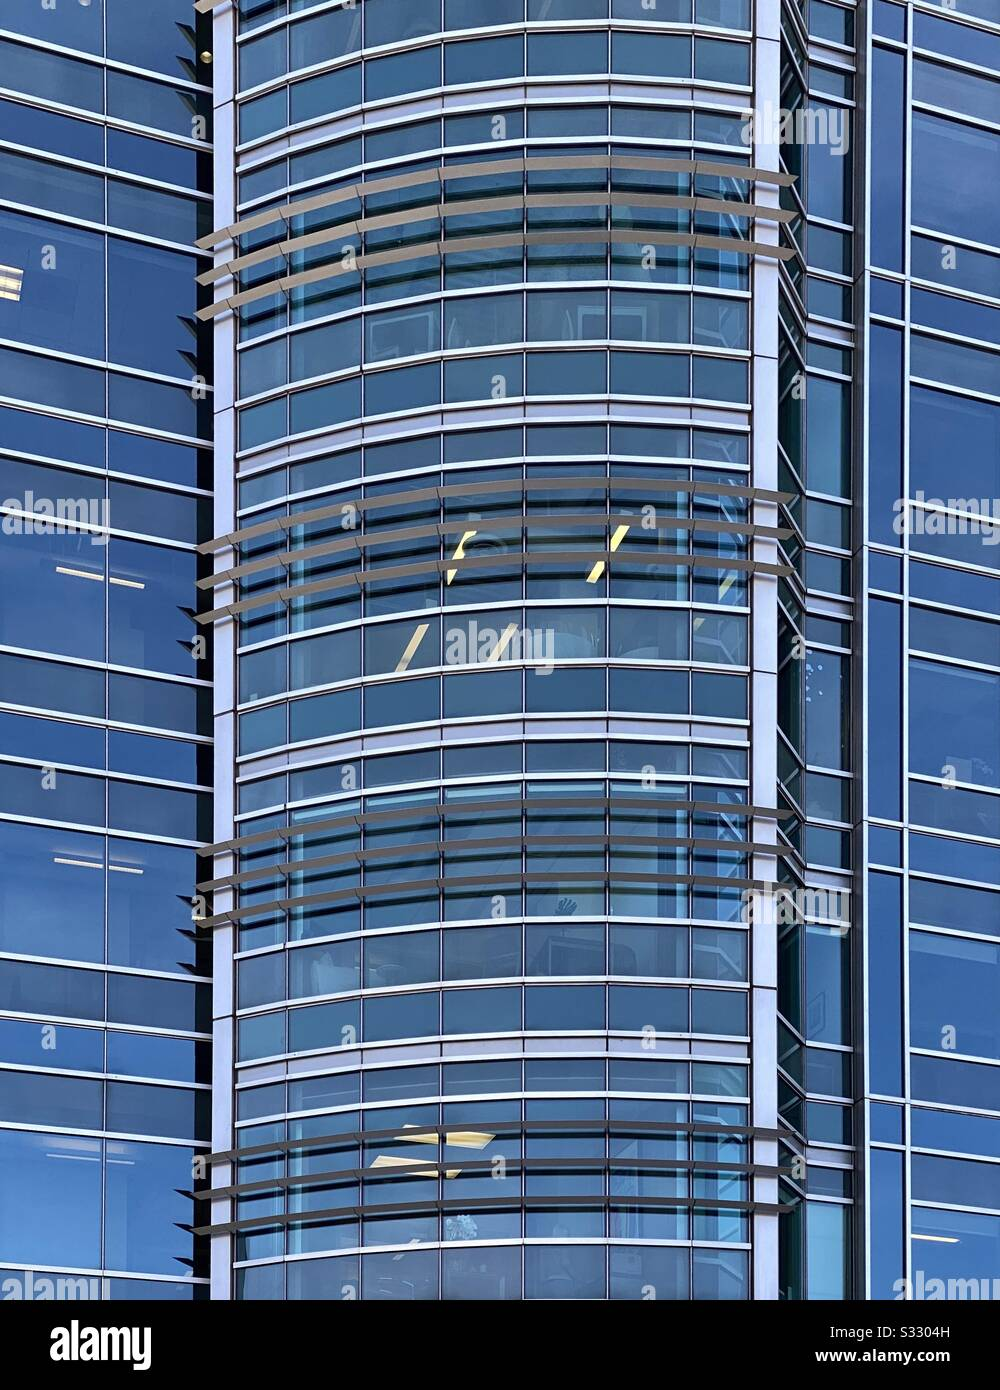 Abstract of large glass building with blue sky reflections Stock Photo